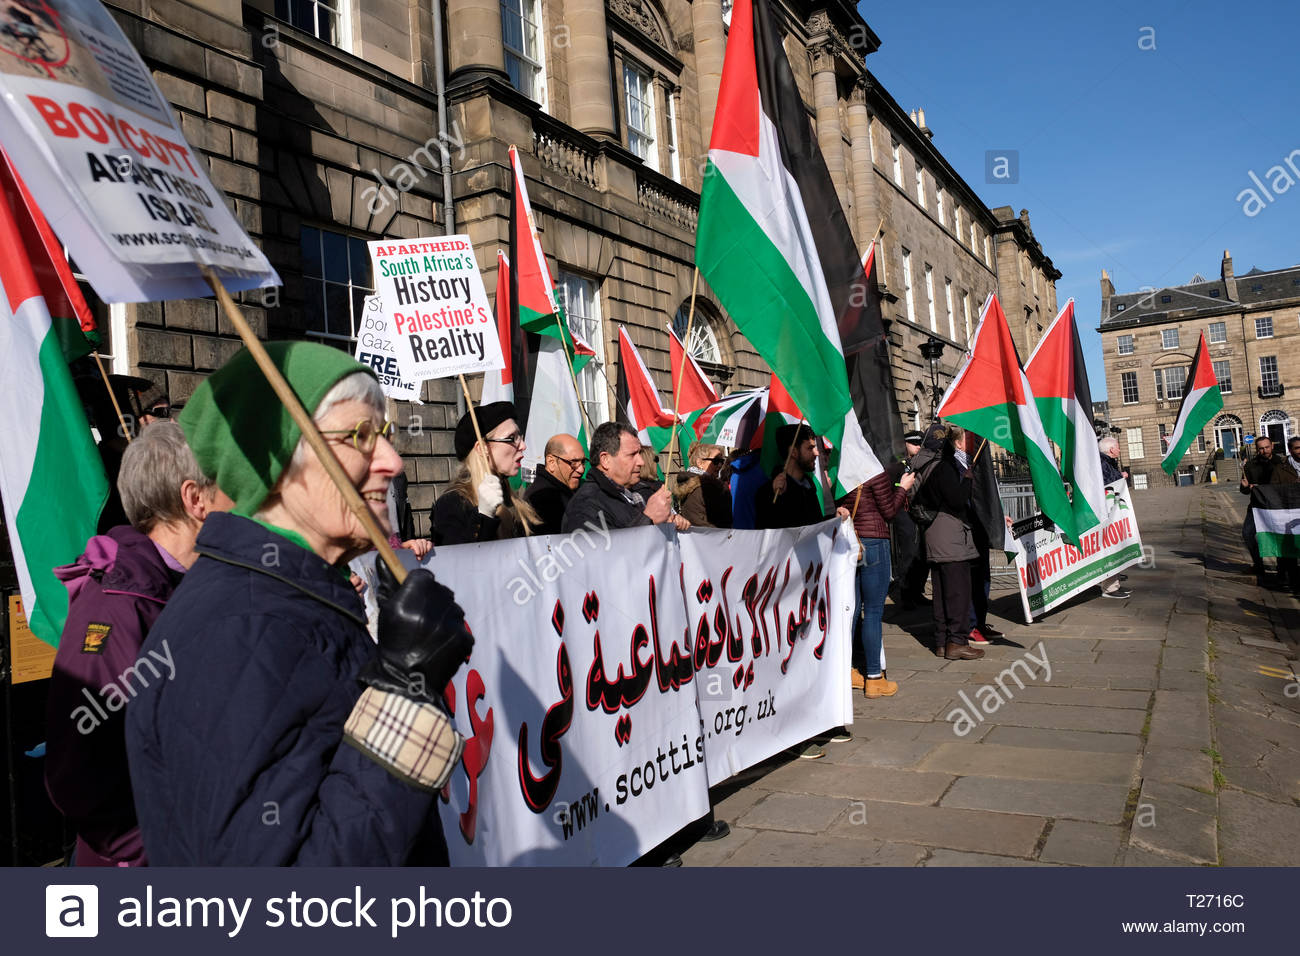 Edinburgh, Scotland, UK. 30th March 2019.  On the steps of Bute House, official residence of the First Minister, Charlotte Square. Demonstration of solidarity with the Palestinian people on 30th March, Land Day, which also marks one year since the start of the Gaza Great March of Return. On Land Day in 2018, Palestinians in Gaza began their Great March of Return calling for the lifting of Israel's 11-year illegal blockade on Gaza and for the right of Palestinian refugees to return to their villages and towns. Credit: Craig Brown/Alamy Live News - Stock Image